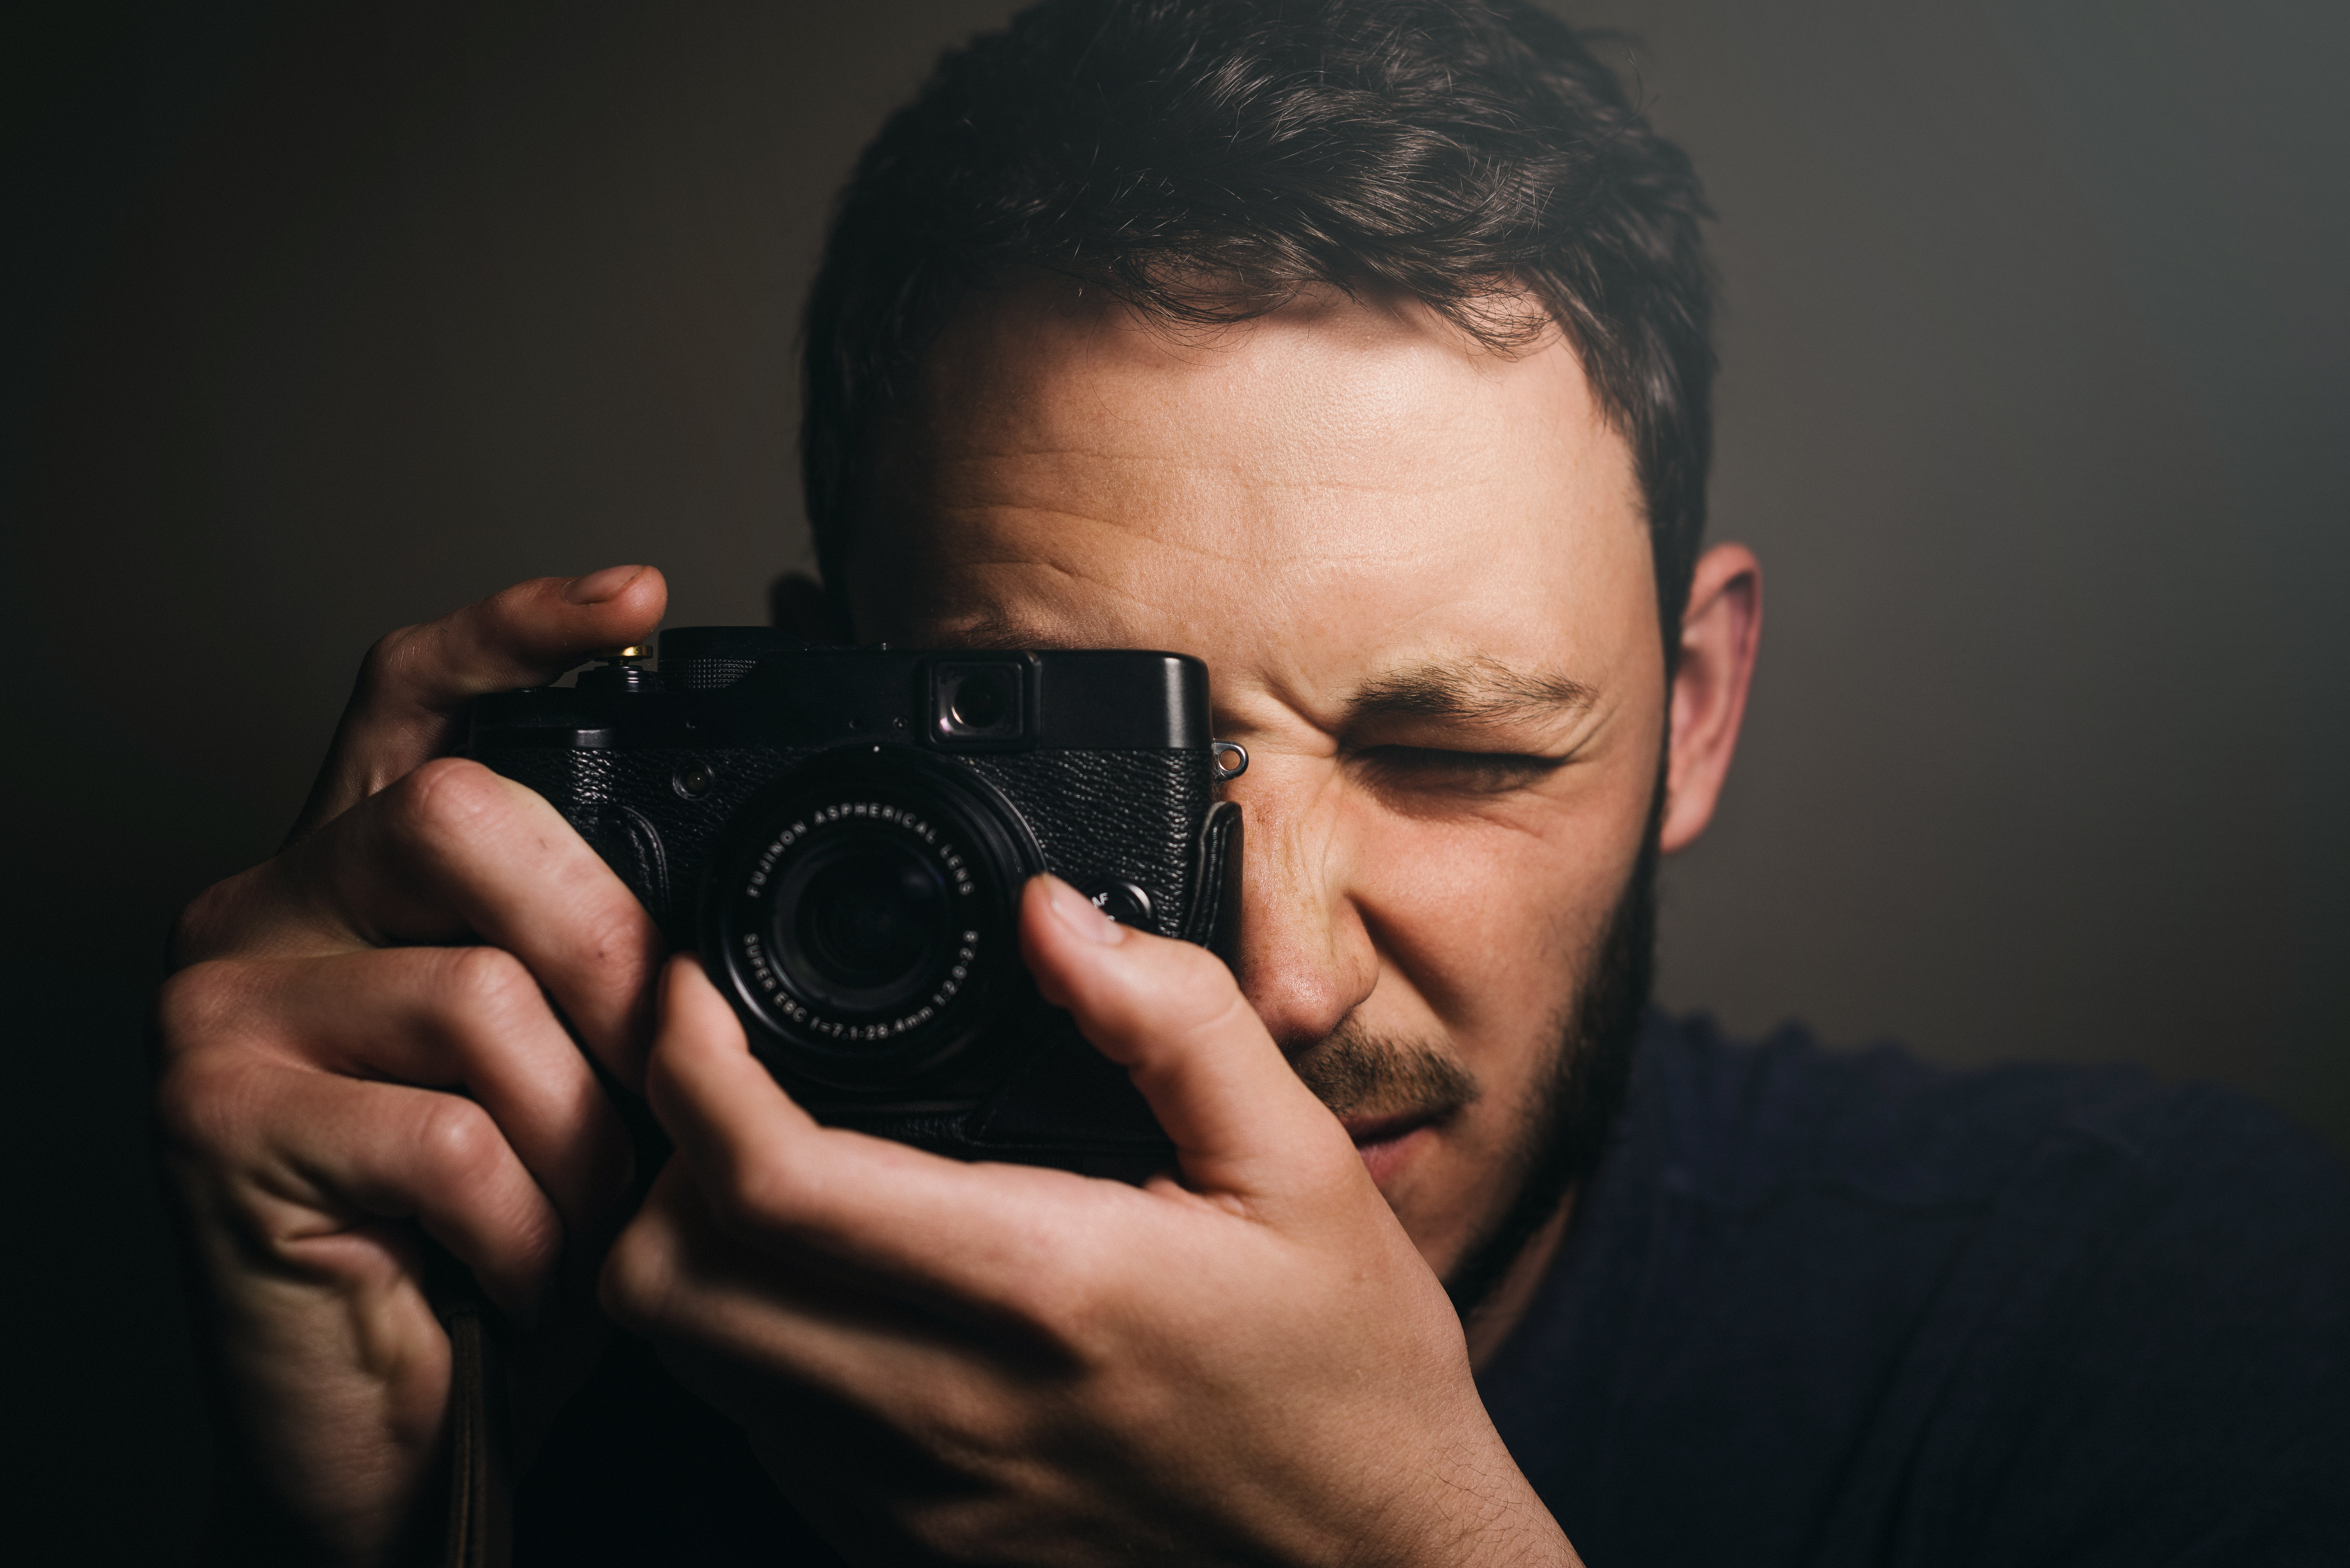 A man taking a photo with a camera